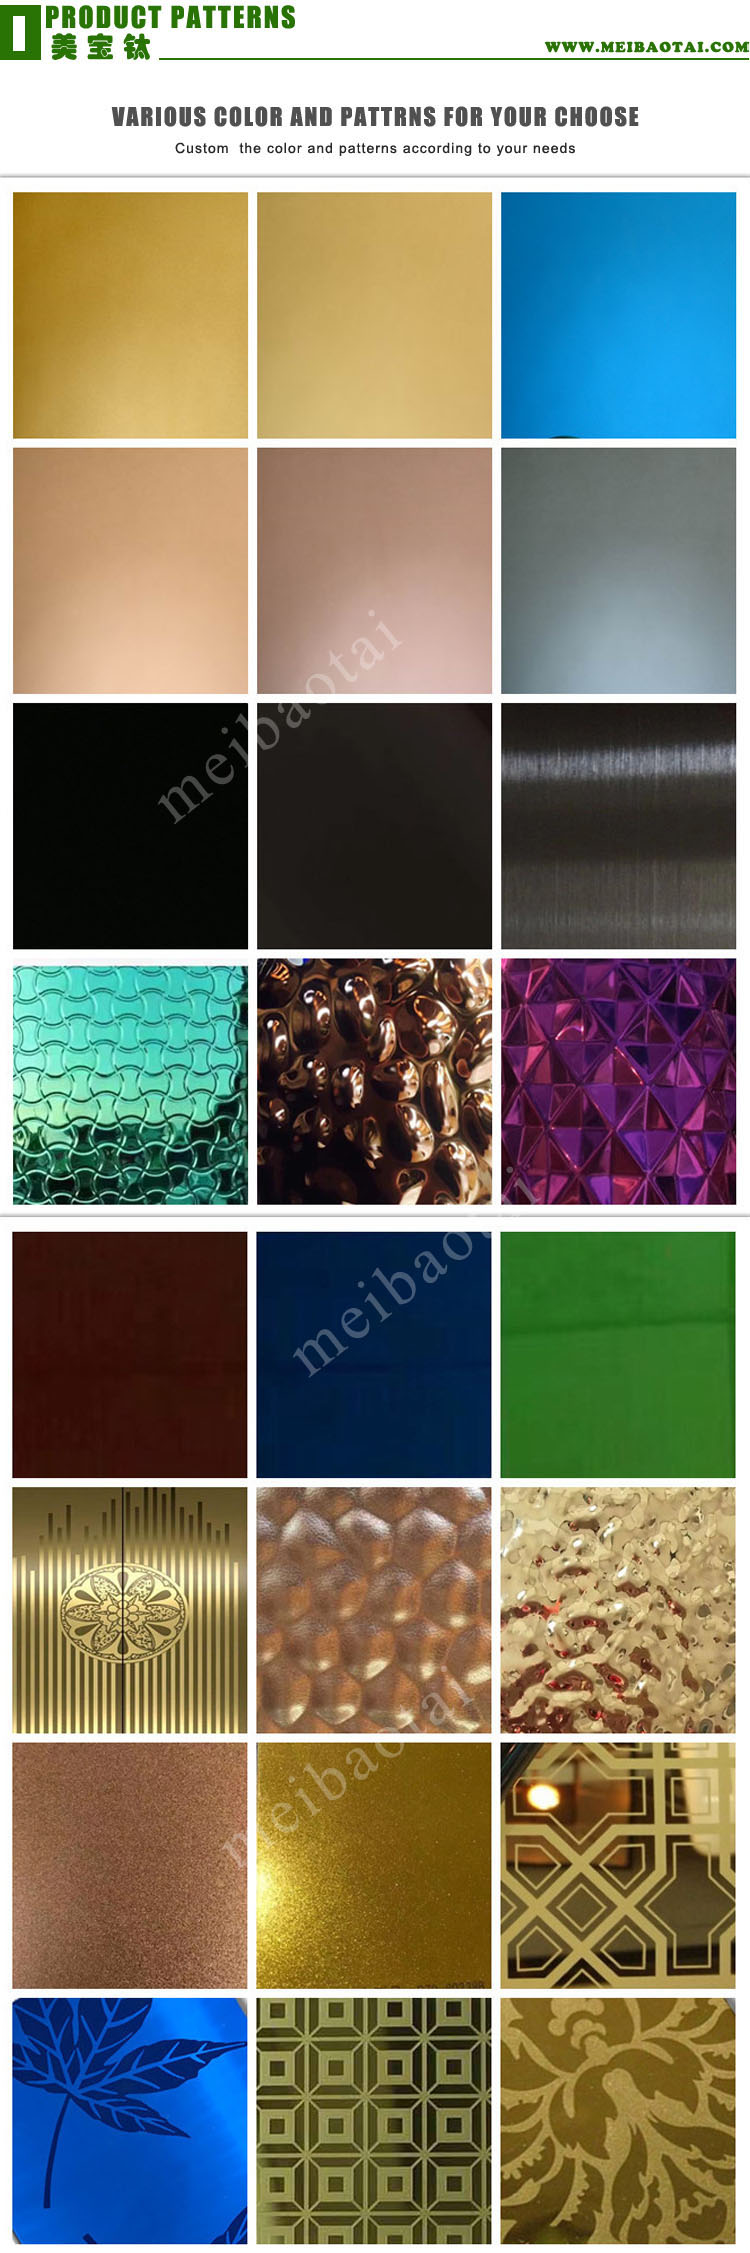 color_sheet_products_patterns